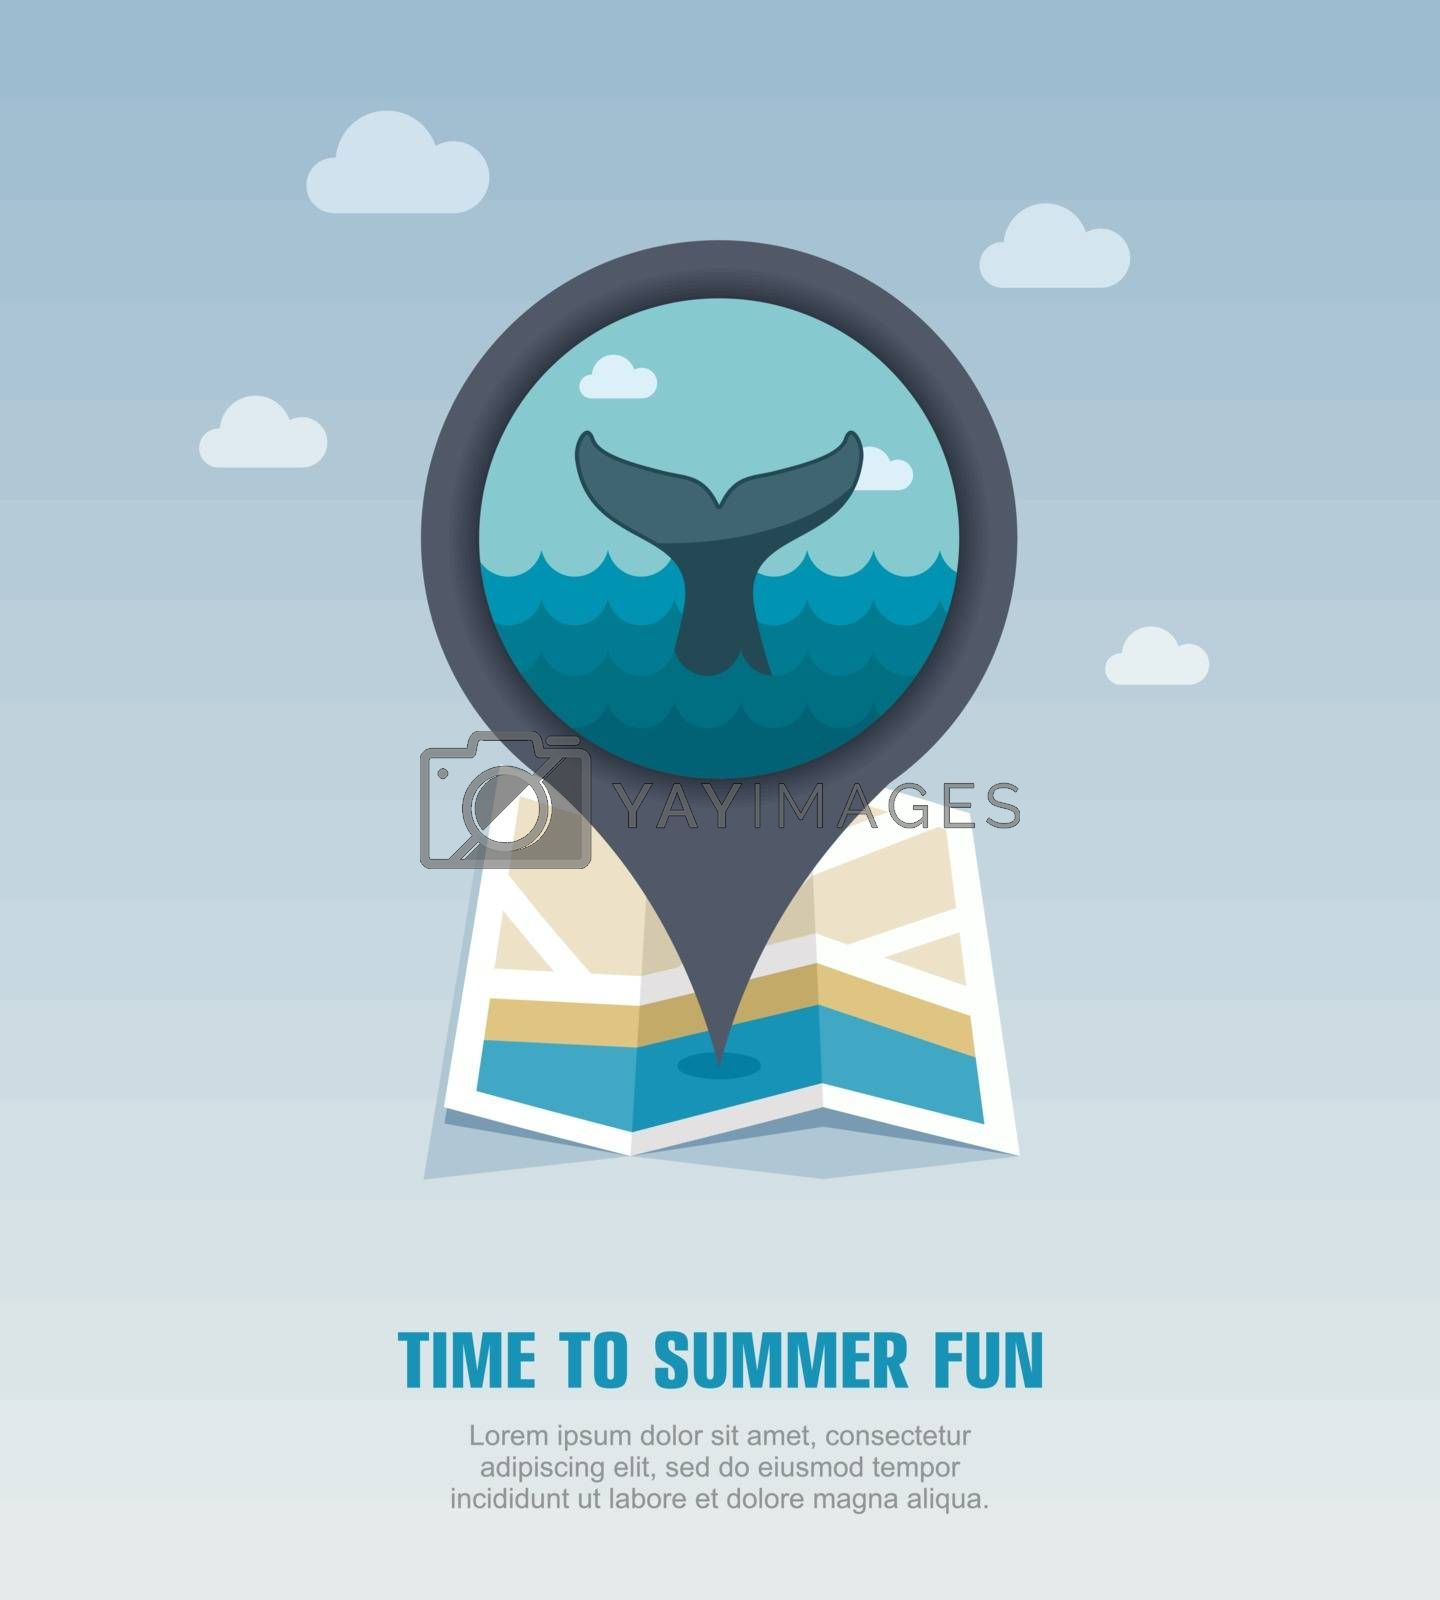 Whale tail pin map icon. Summer. Vacation by nosik